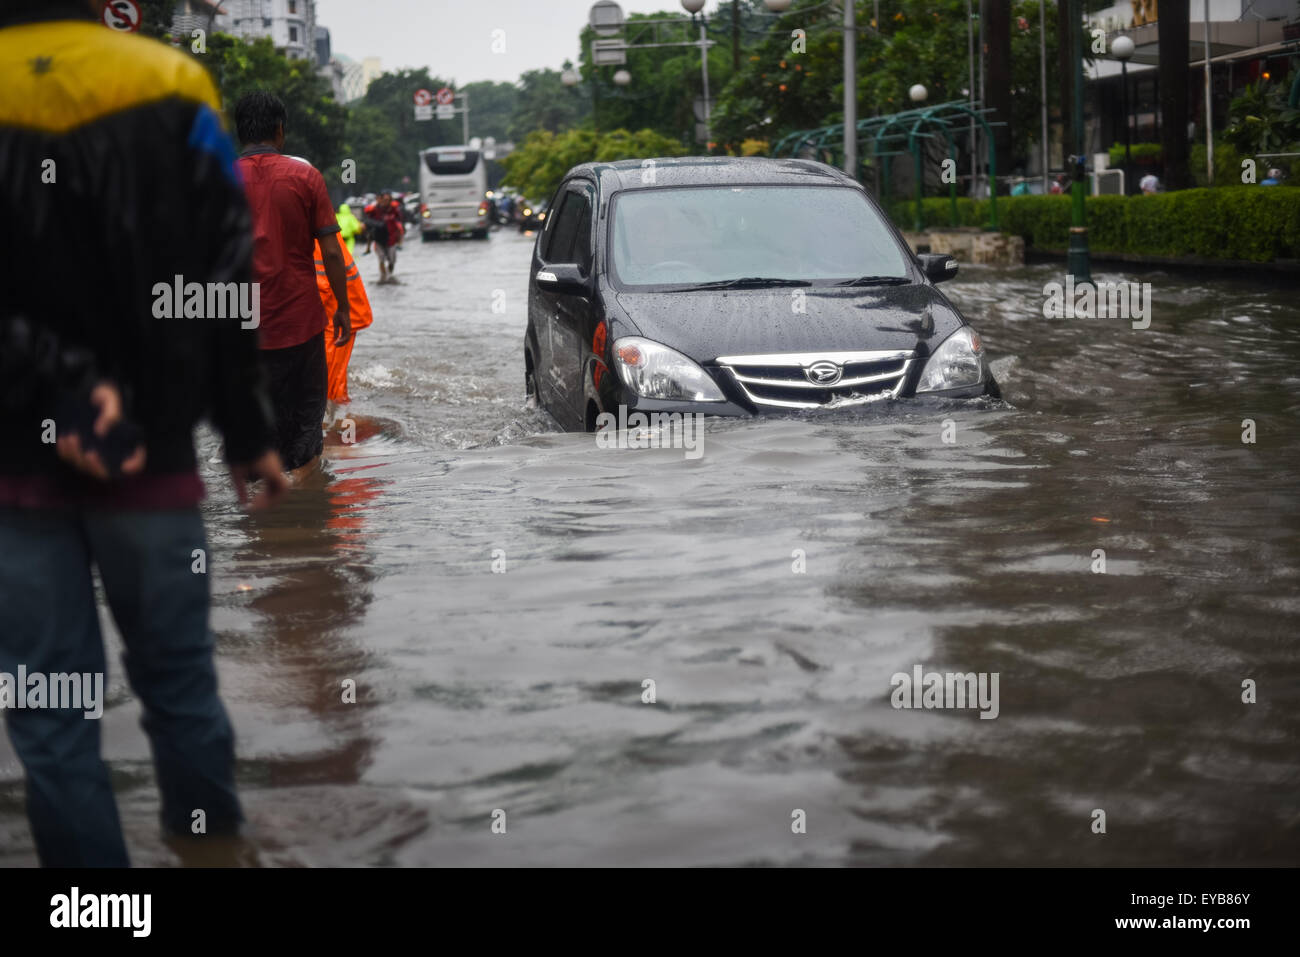 Car passing through flooded street. - Stock Image